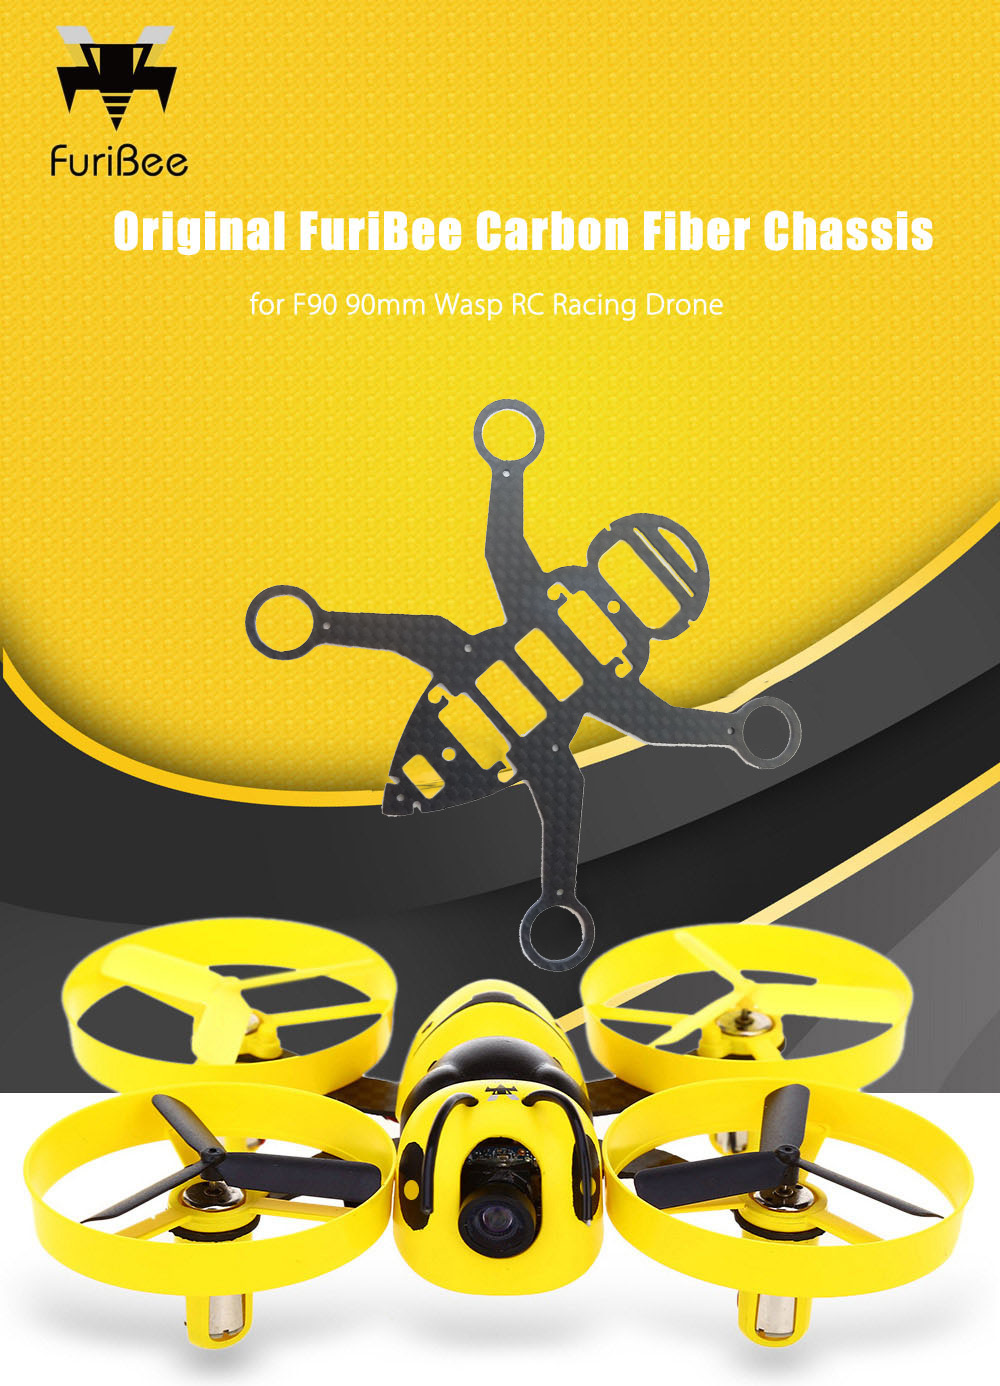 Original FuriBee Carbon Fiber Chassis for F90 90mm Wasp RC Racing Drone